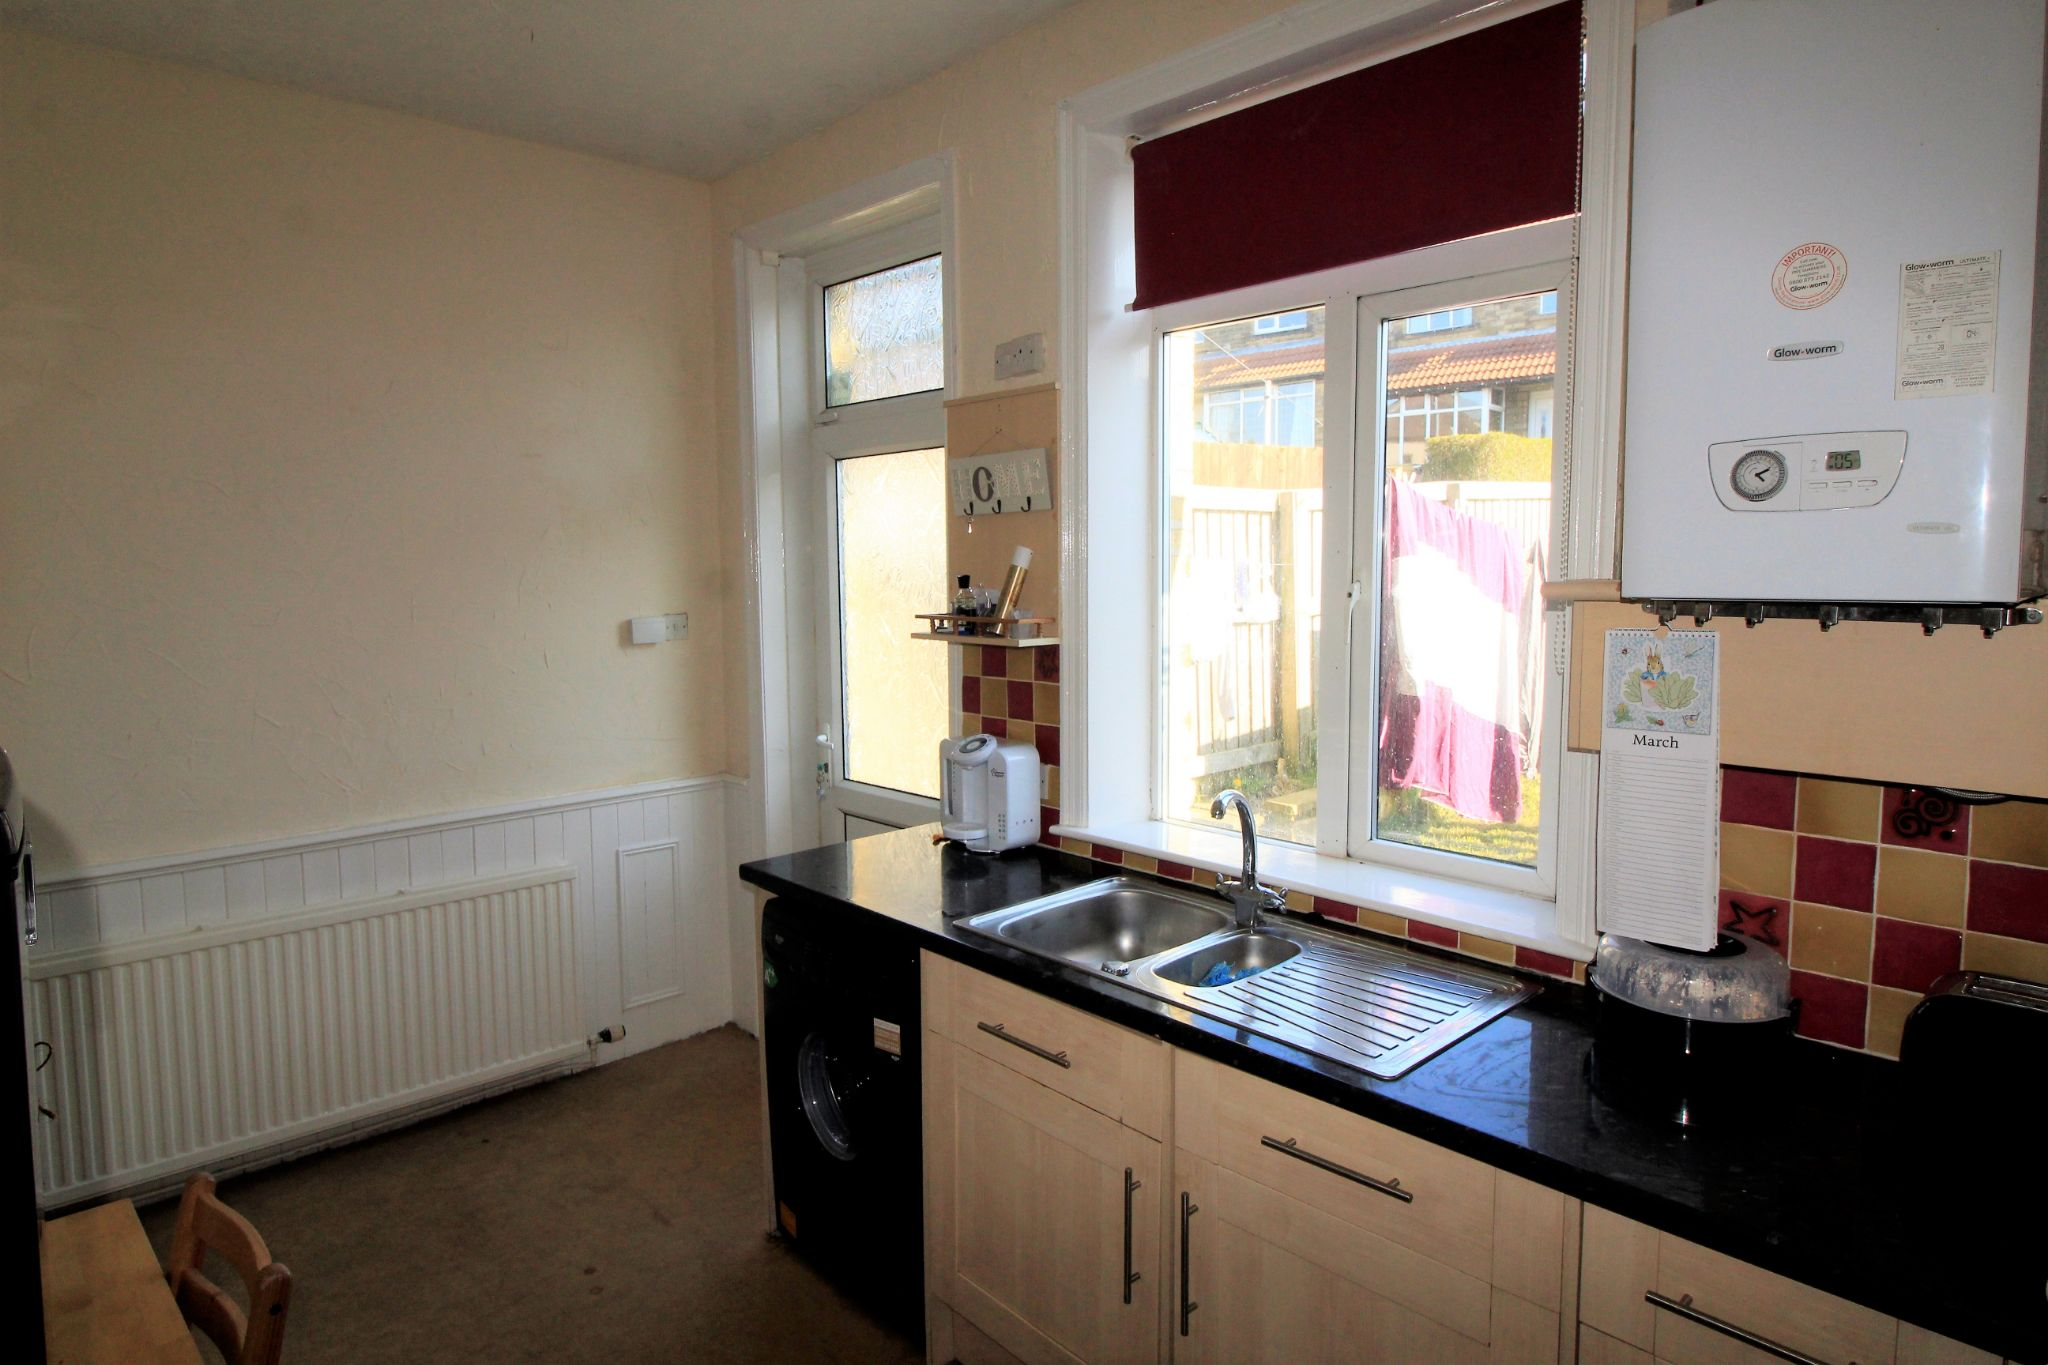 2 bedroom end terraced house SSTC in Brighouse - Photograph 10